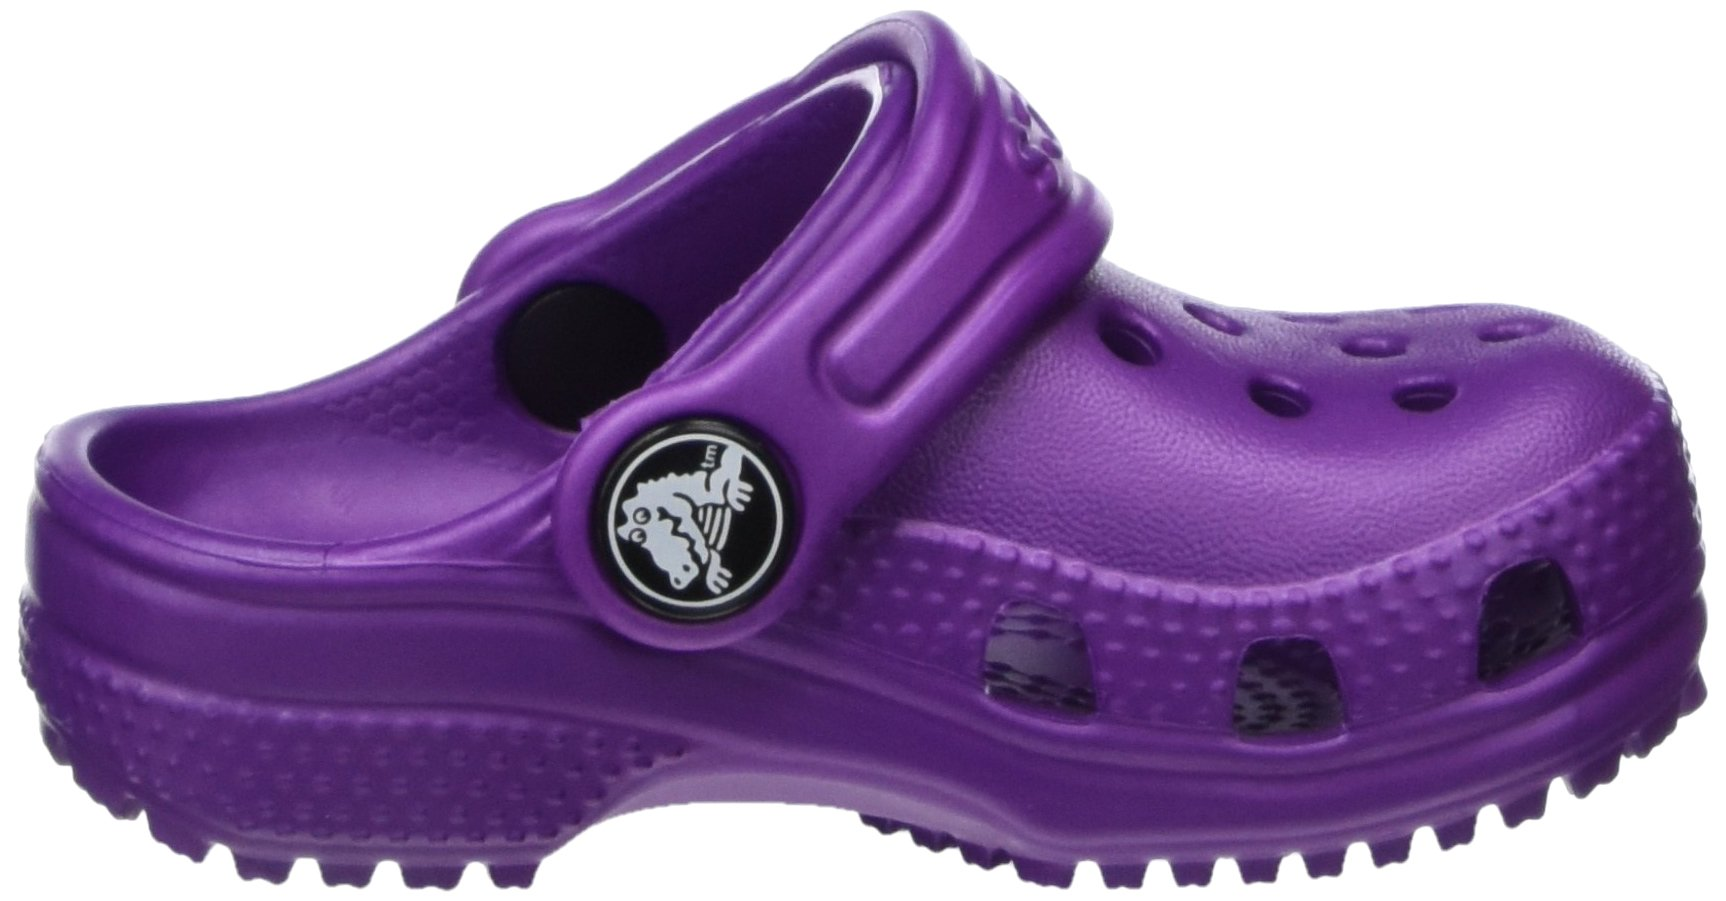 Crocs Kid's Classic Clog K Shoe, Amethyst, 7 M US Toddler by Crocs (Image #7)